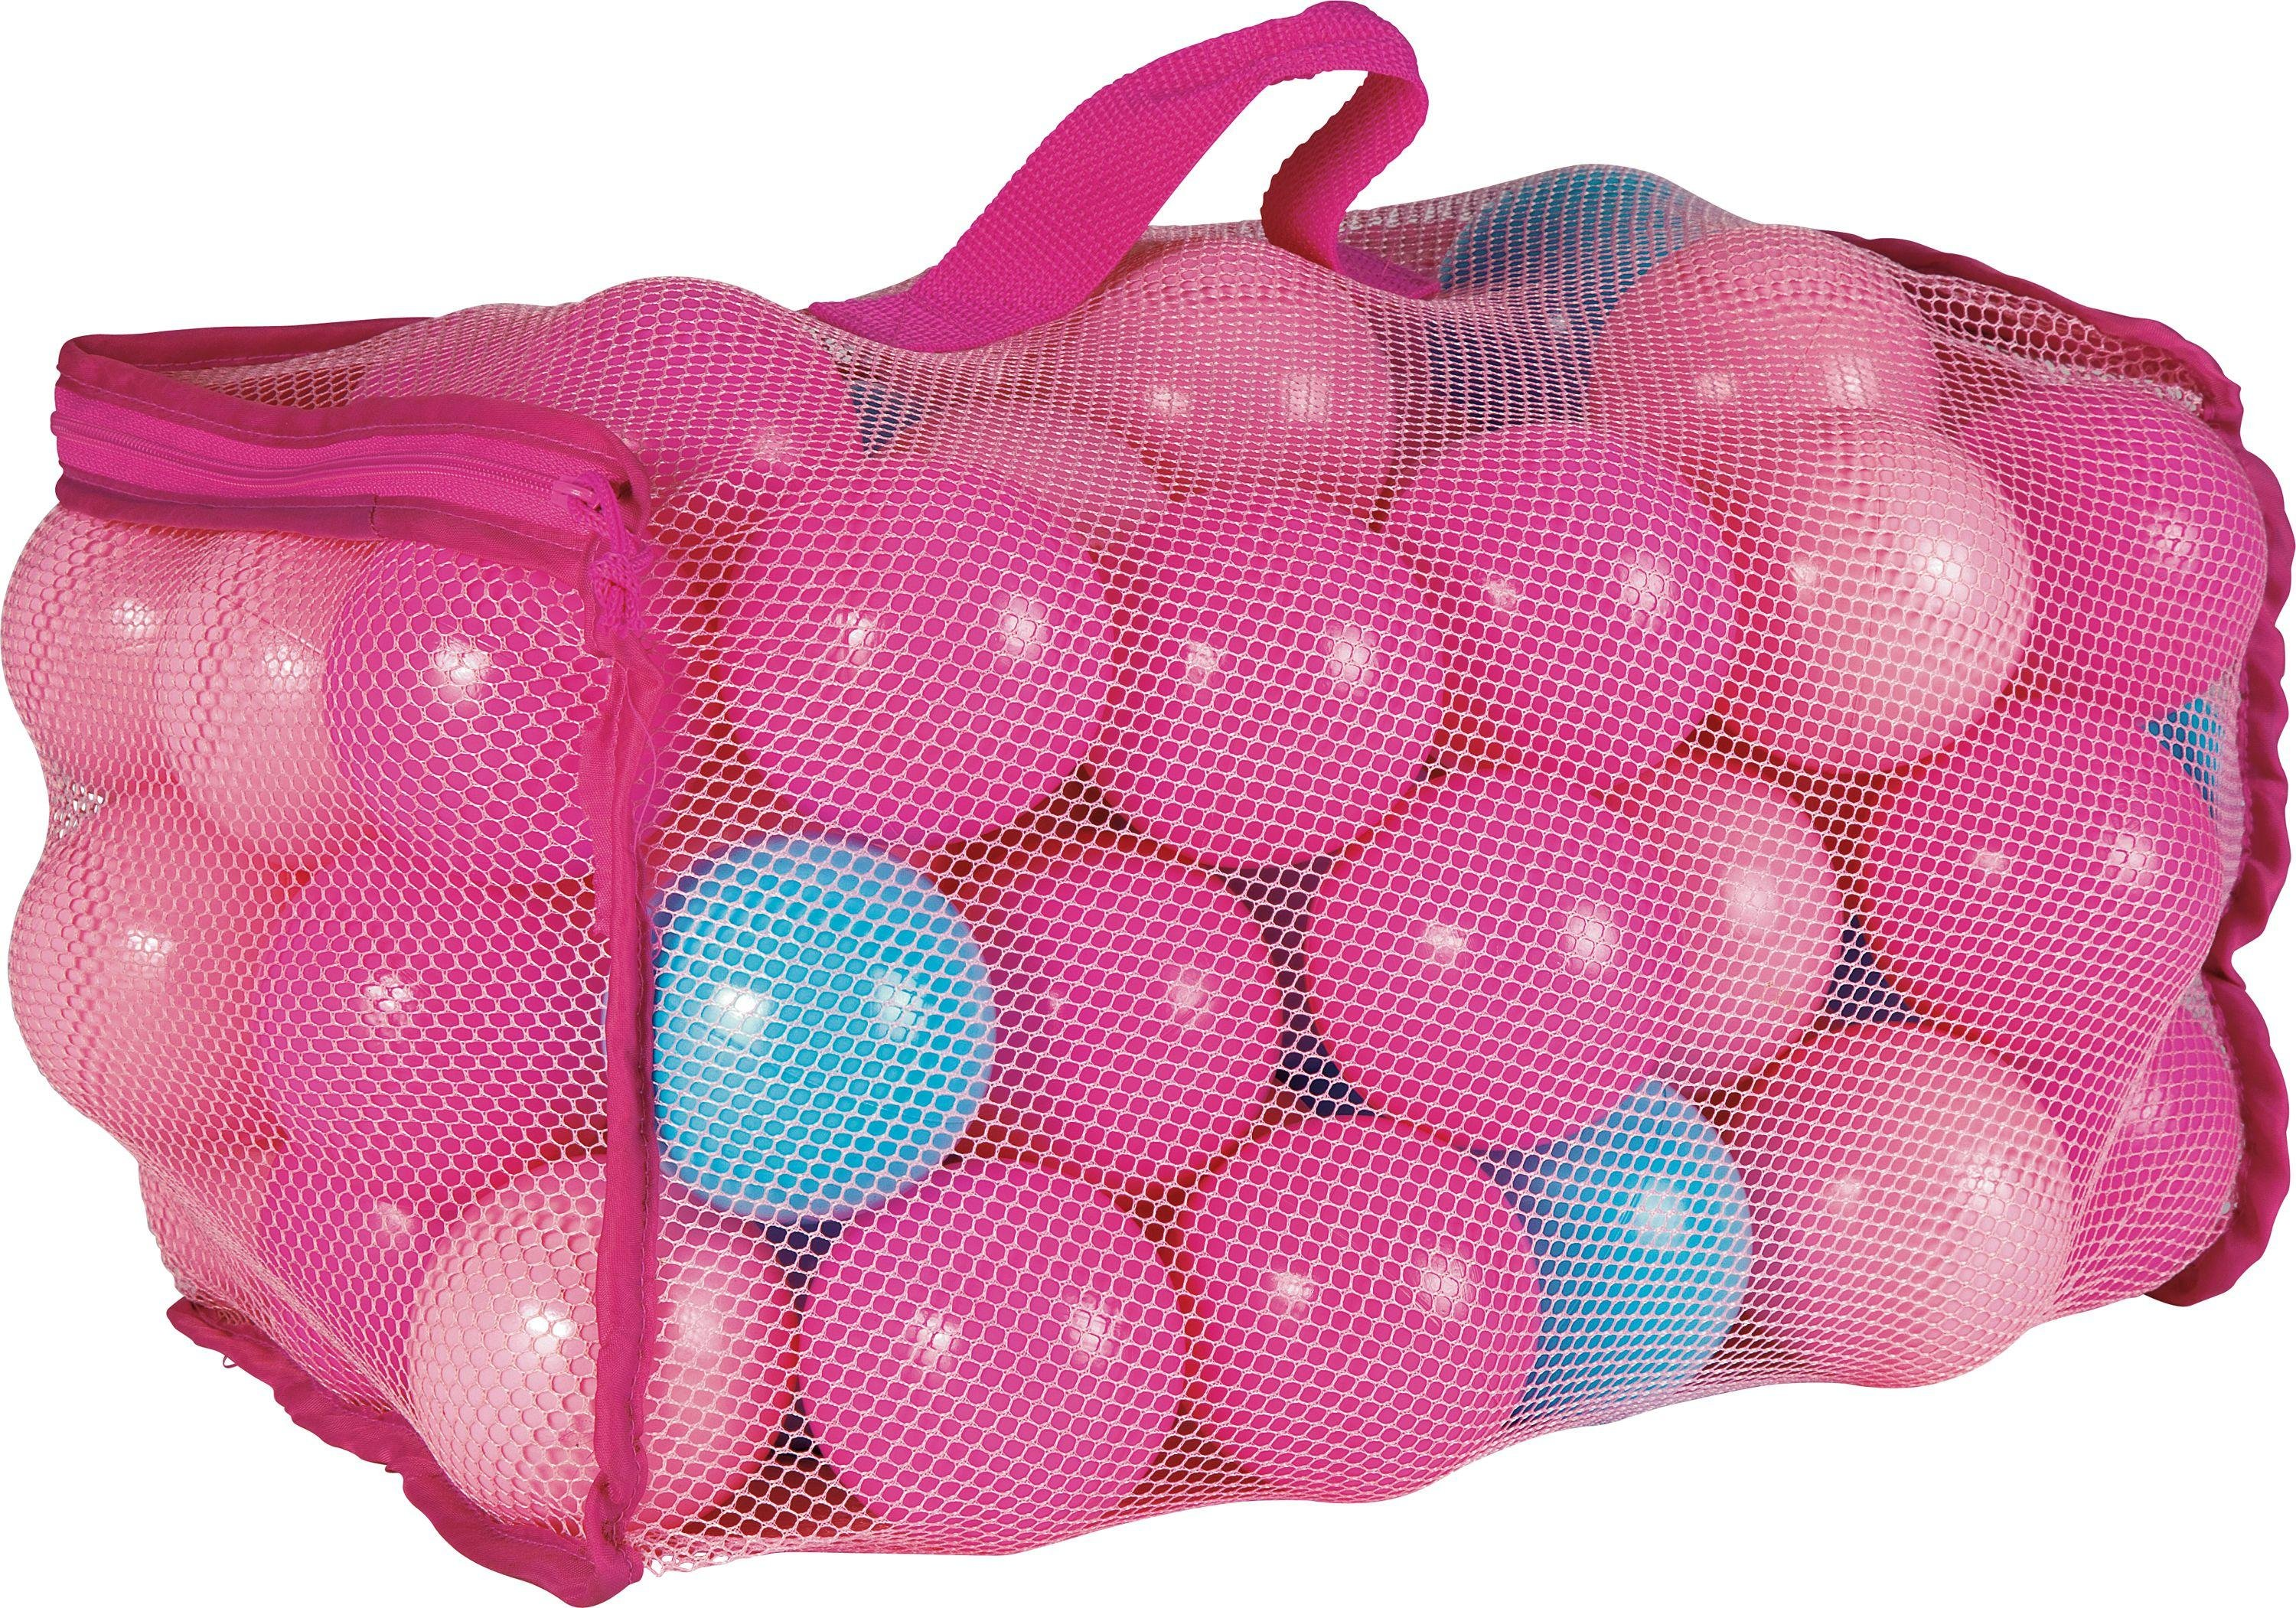 Chad Valley   Bag Of 100 Pink And Blue Playballs